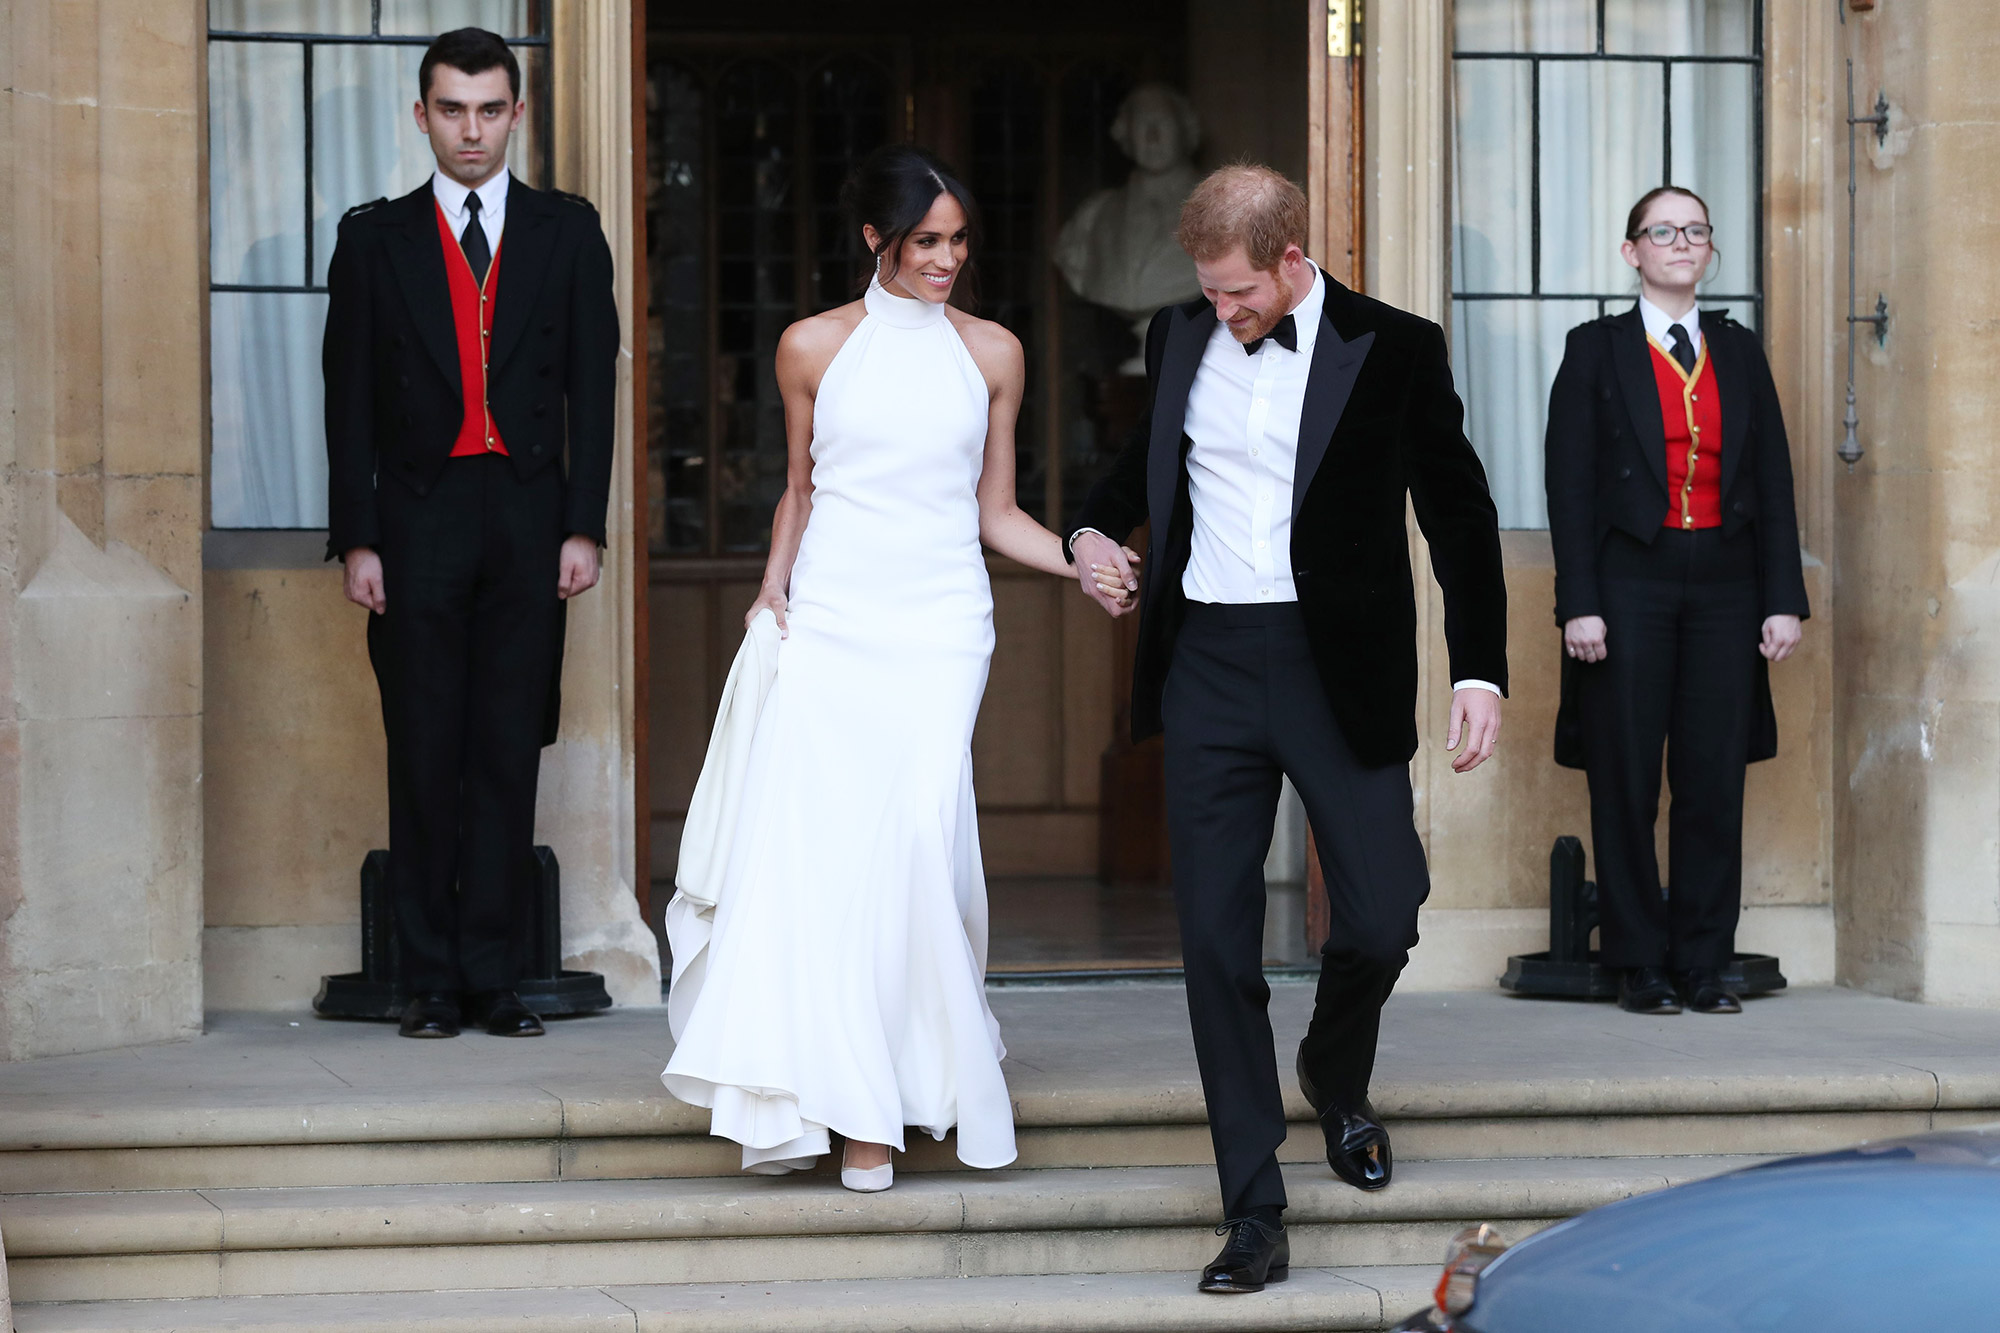 The newly married Britain's Prince Harry, Duke of Sussex, (R) and Meghan Markle, Duchess of Sussex, (L) leave Windsor Castle in Windsor on May 19, 2018 after their wedding to attend an evening reception at Frogmore House.